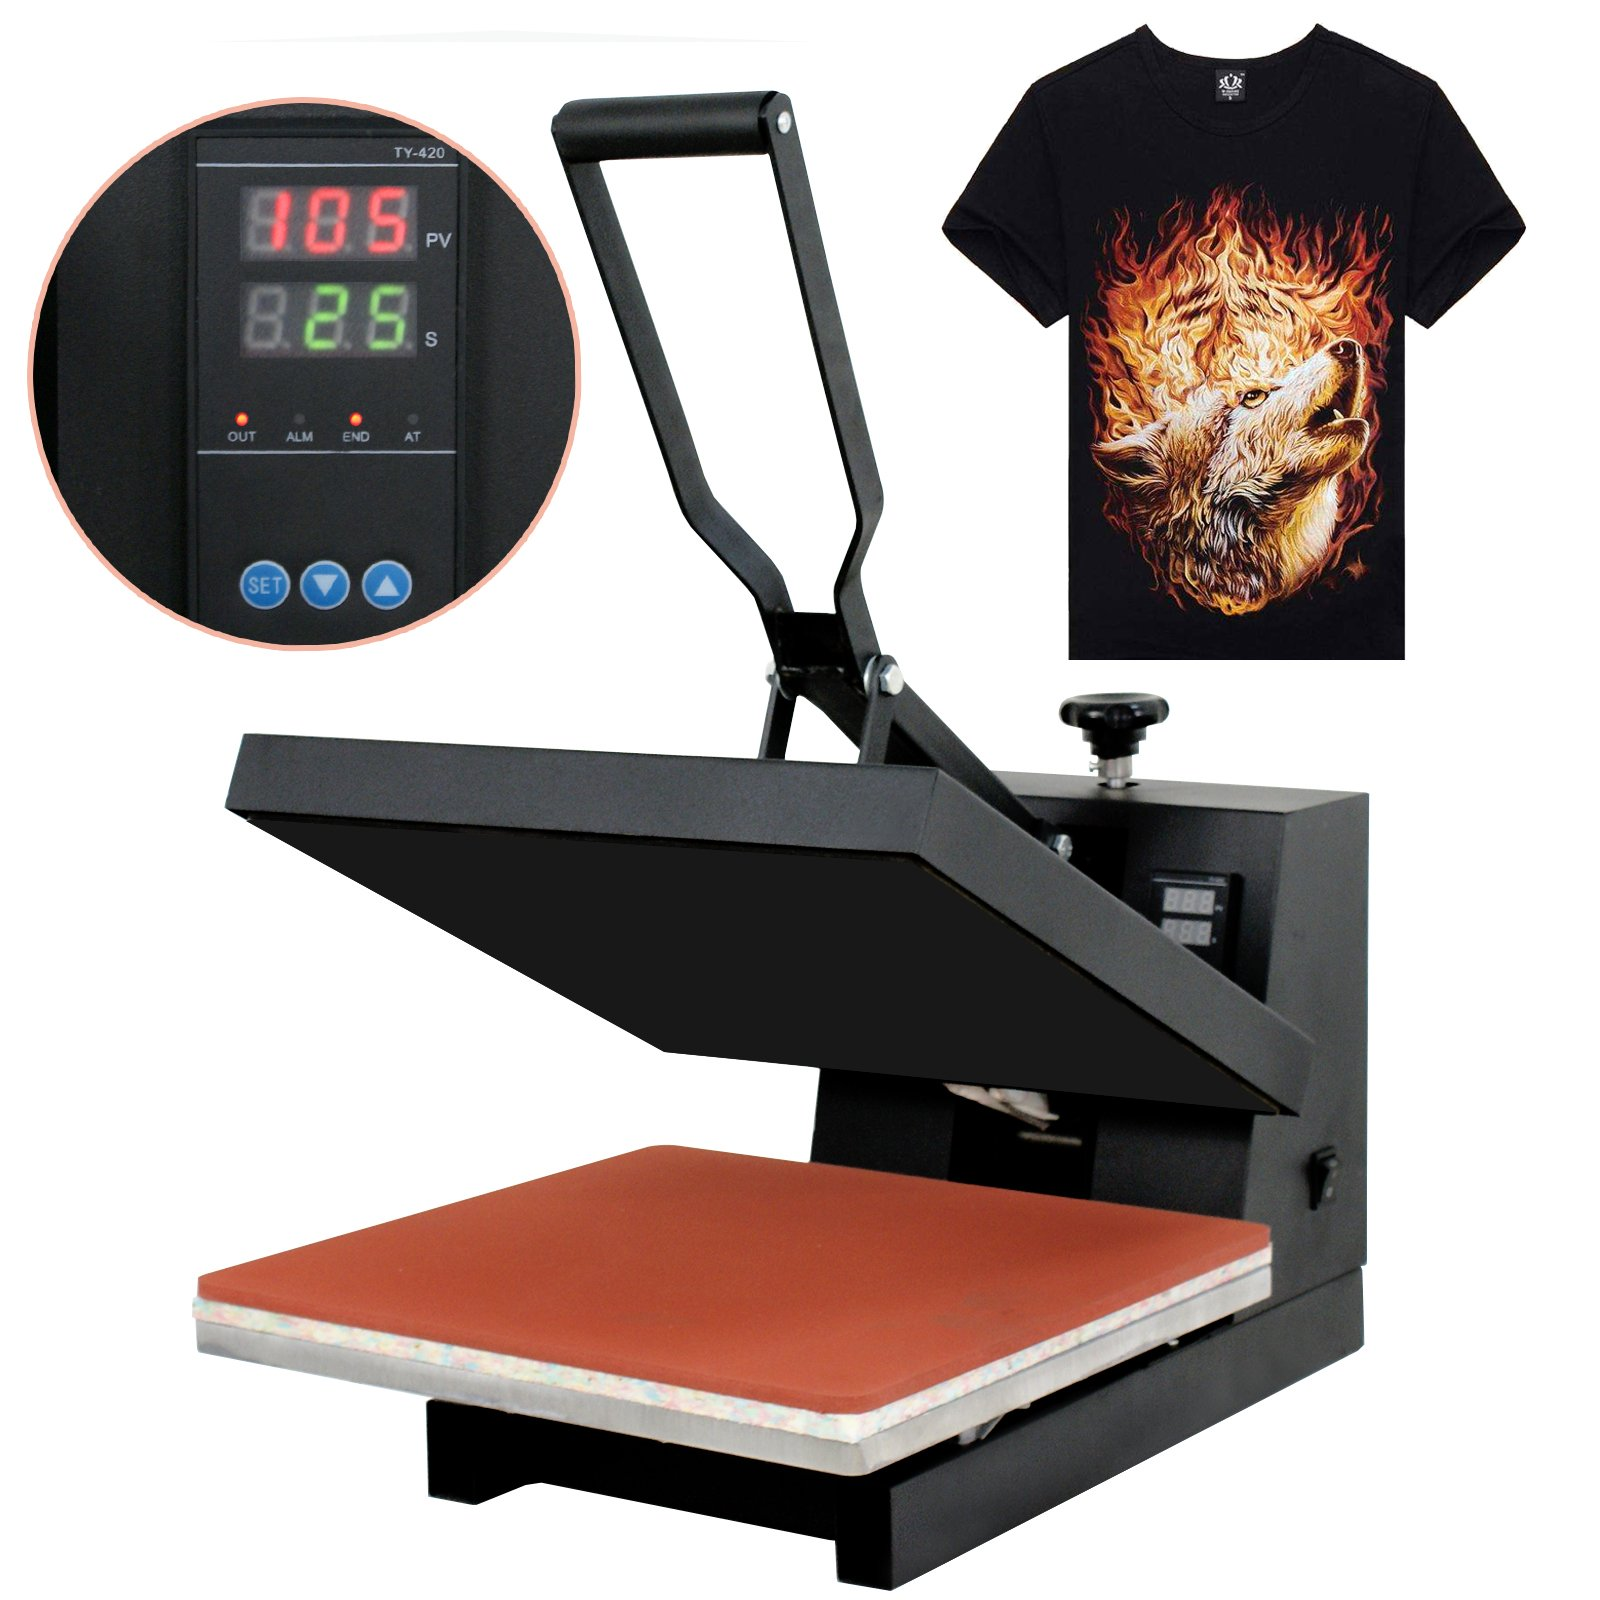 Super Deal 15'' X 15'' Digital Heat Press Clamshell Transfer Machine for T-Shirt (15'' X 15'') by SUPER DEAL